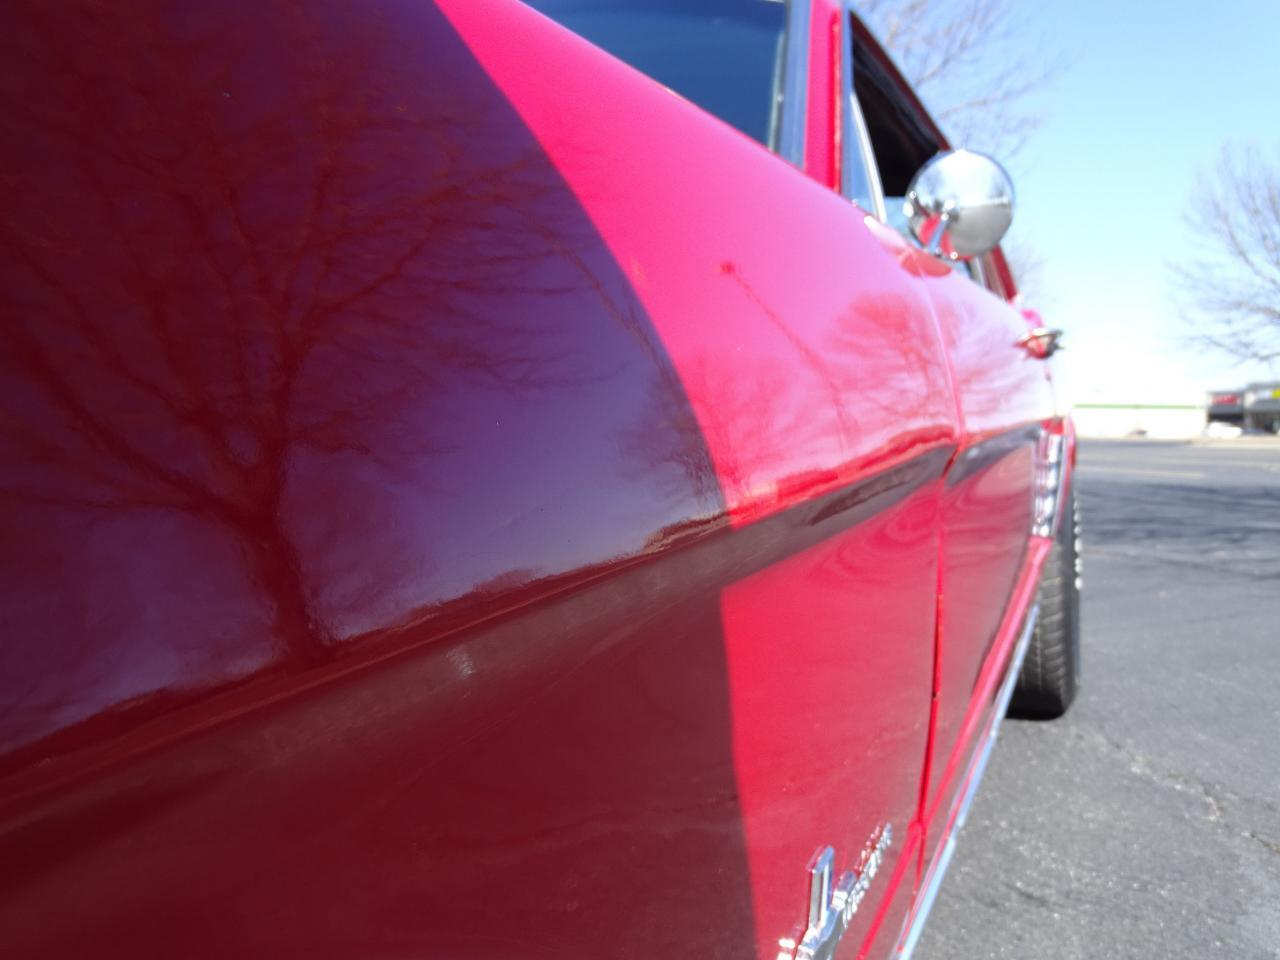 Large Picture of '66 Ford Mustang located in O'Fallon Illinois - $16,595.00 Offered by Gateway Classic Cars - St. Louis - MZEK